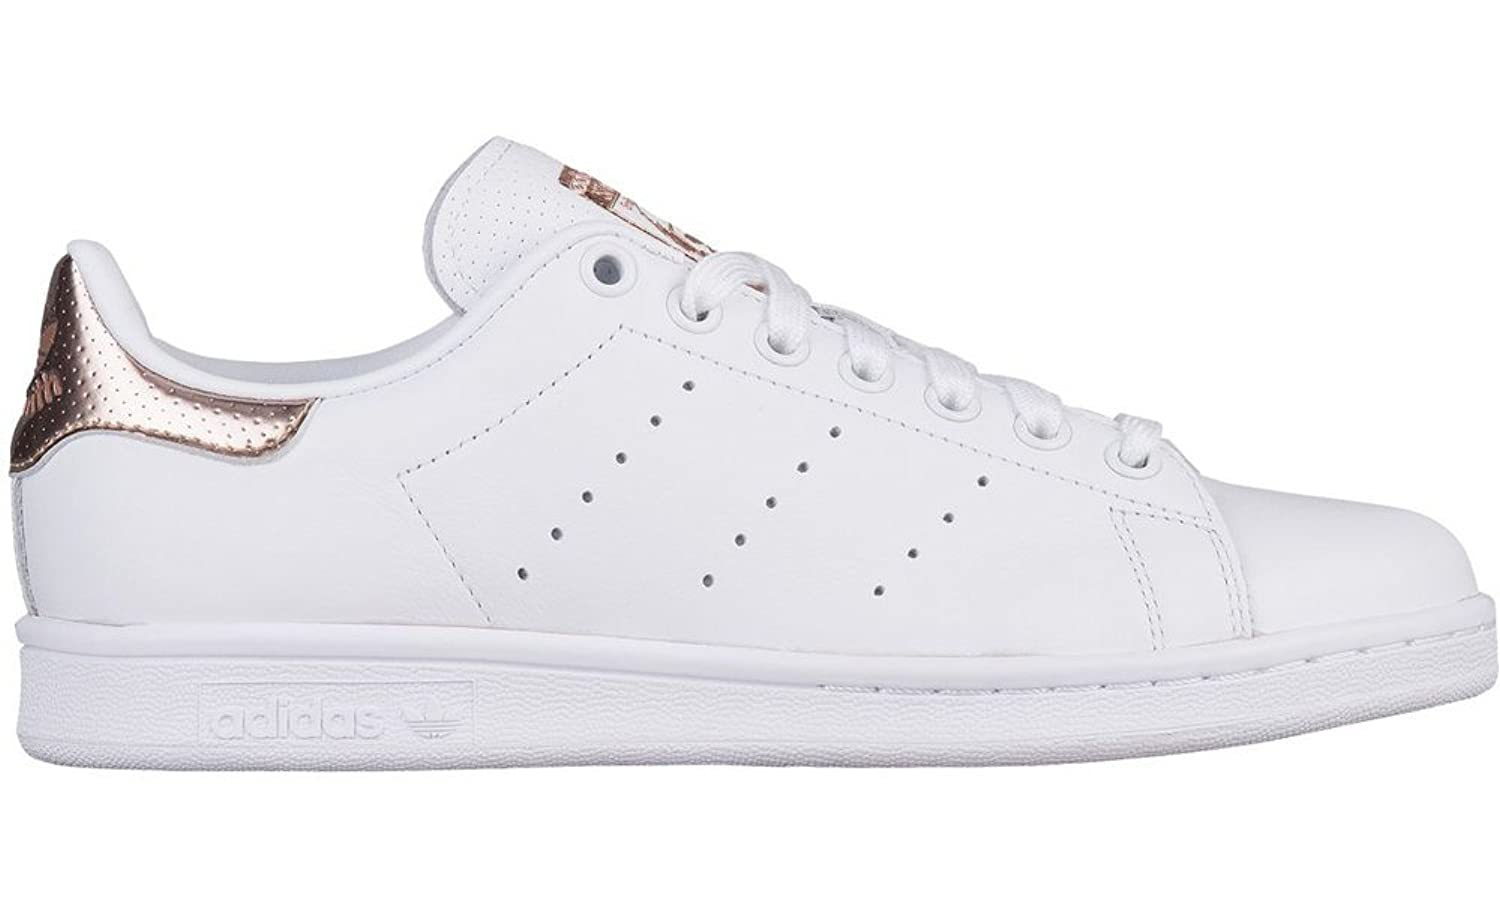 adidas stan smith women rose gold los granados. Black Bedroom Furniture Sets. Home Design Ideas